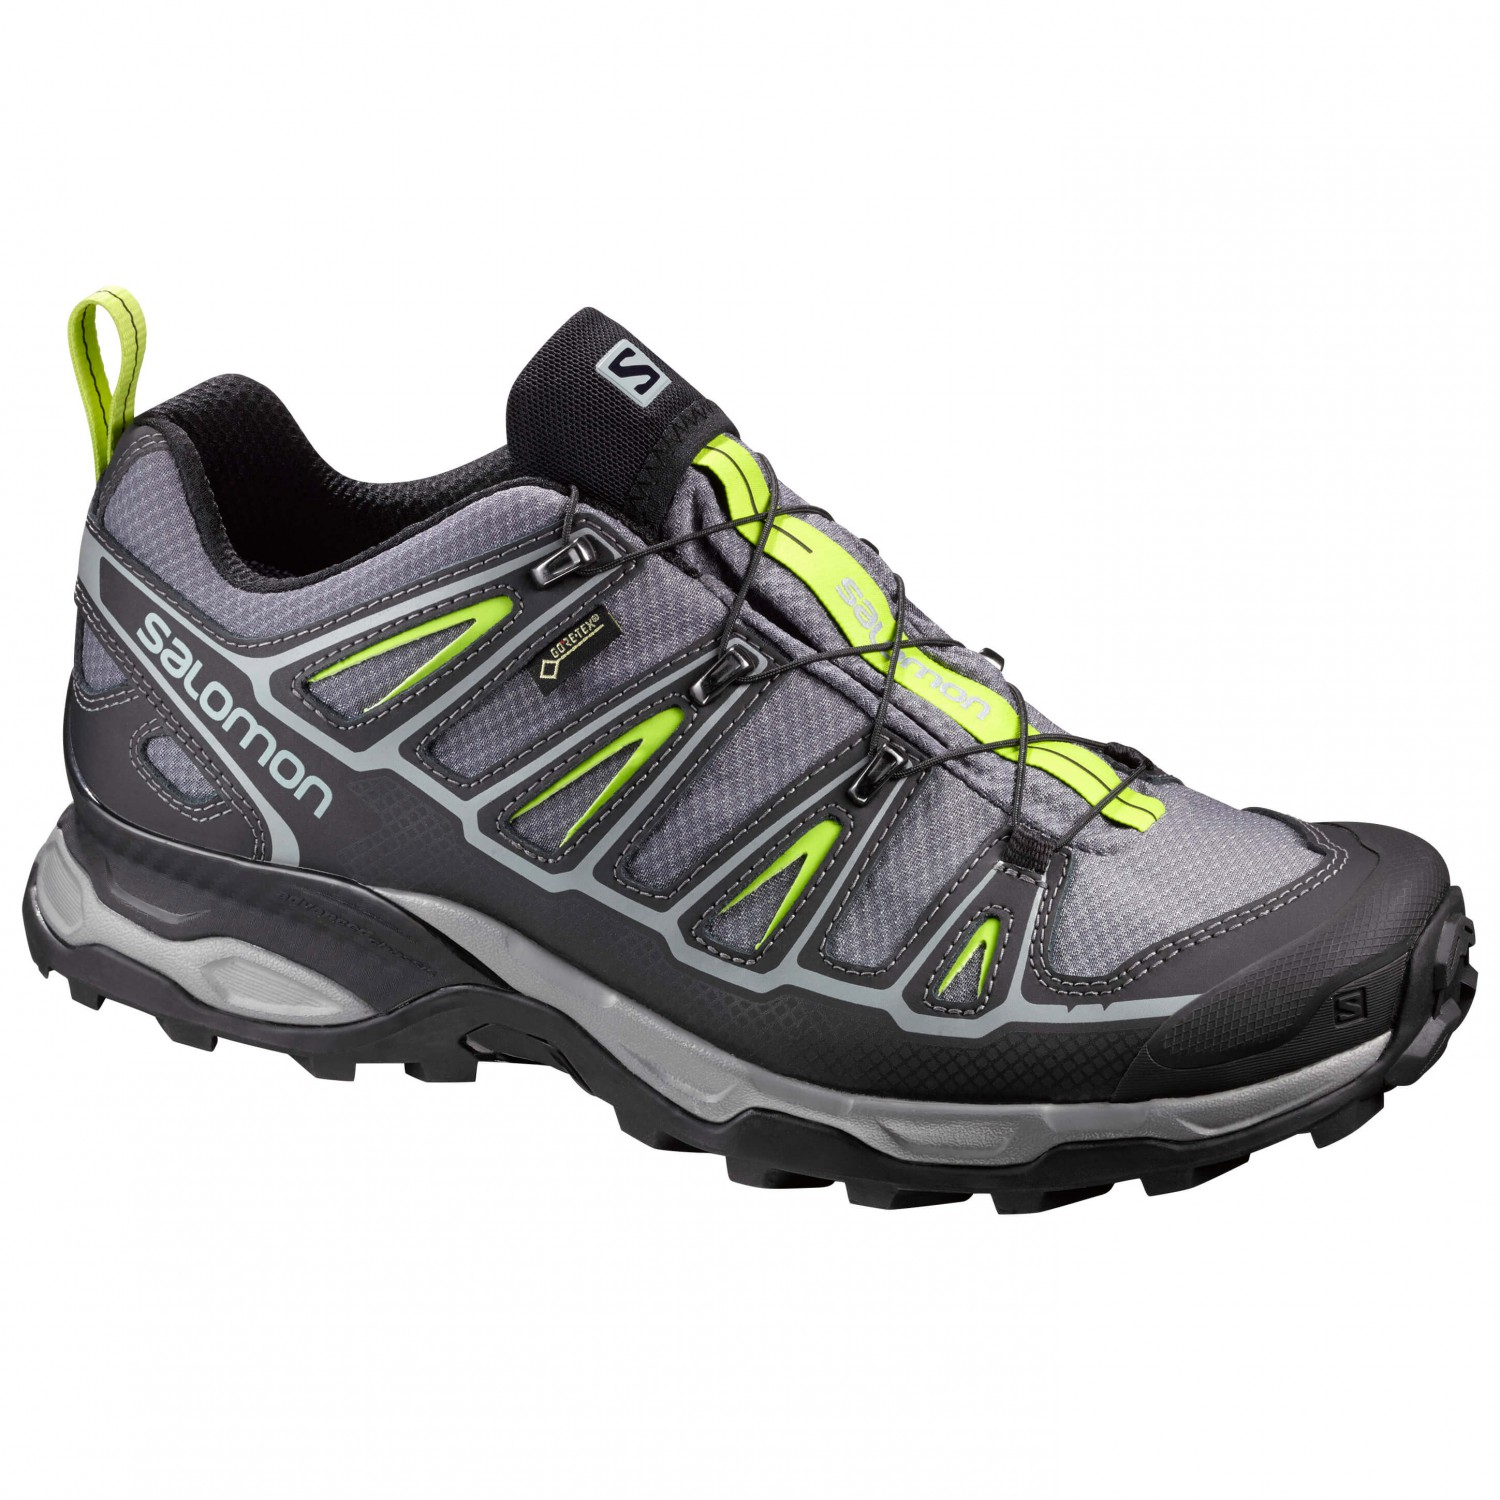 Salomon X Ultra 2 GTX - Walking Boots Men's | Free UK Delivery | Alpinetrek.co.uk